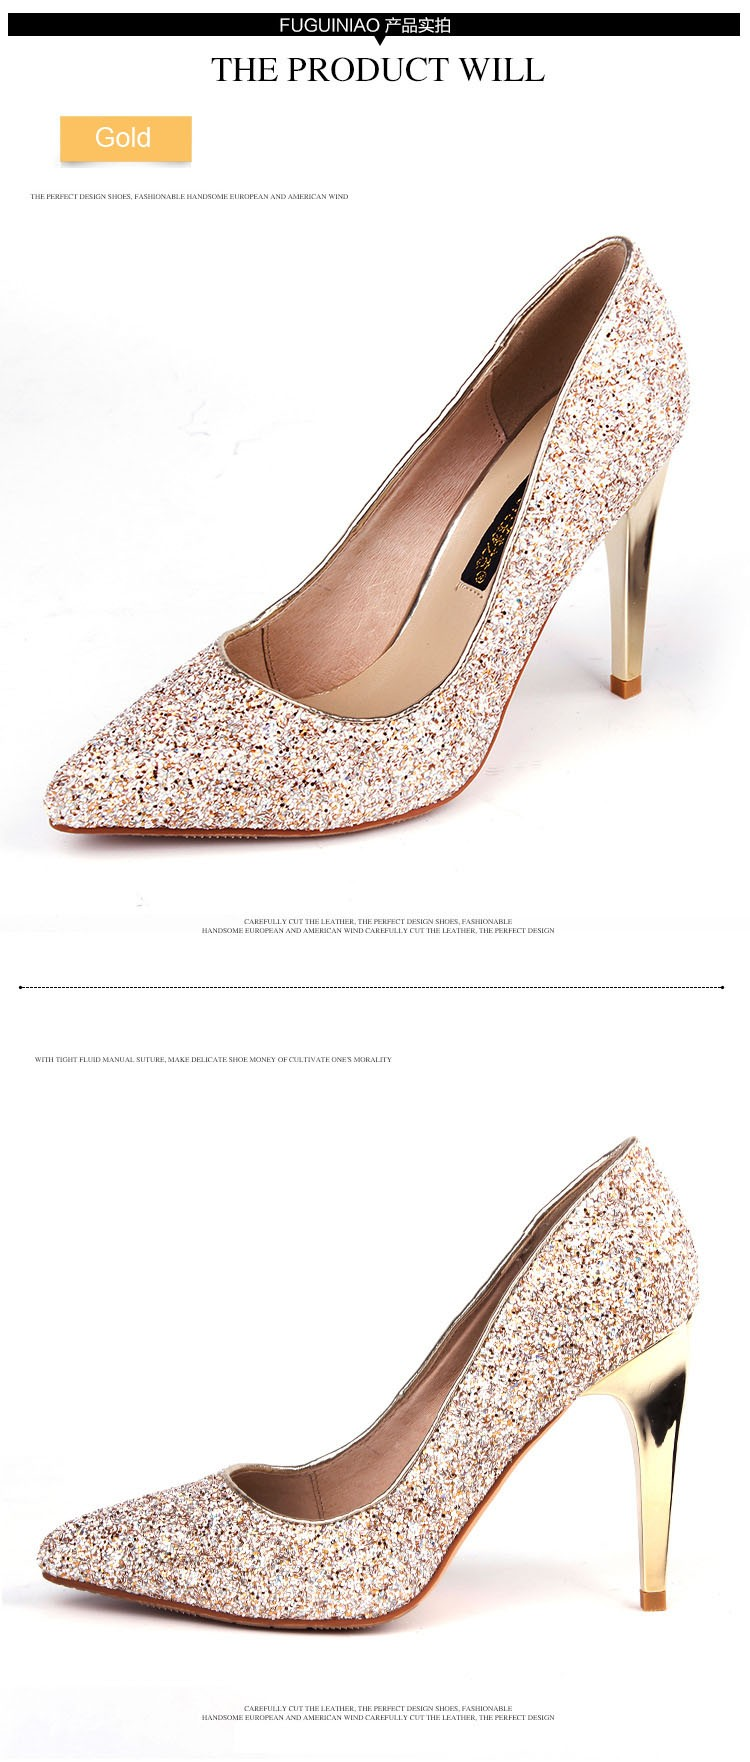 2015 New Arrival Fashion Casual Genuine Leather Women Pumps Thin High-heeled Shoes Pointed Toe Sexy High Heels Female Shoes ZK15